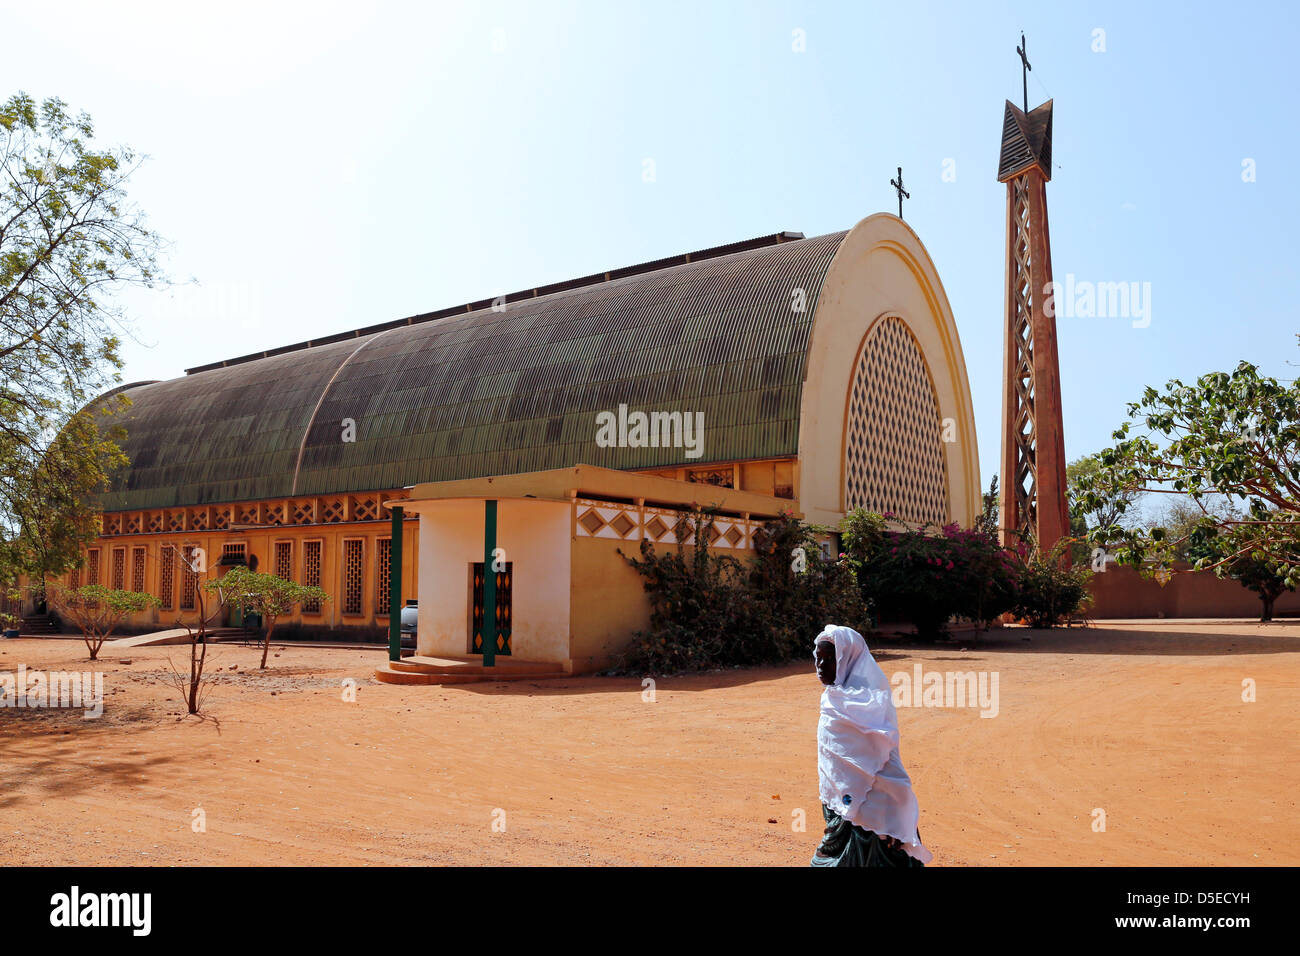 Roman Catholic Cathedral in Bobo-Dioulasse, Burkina Faso, Africa - Stock Image